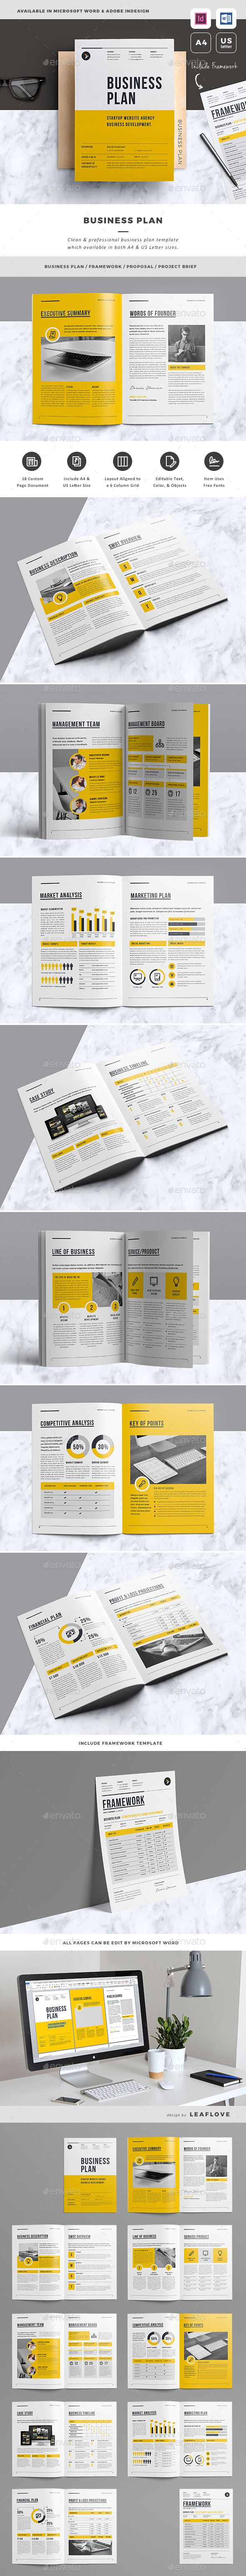 business plan | business planning, stationery design and proposals, Presentation templates